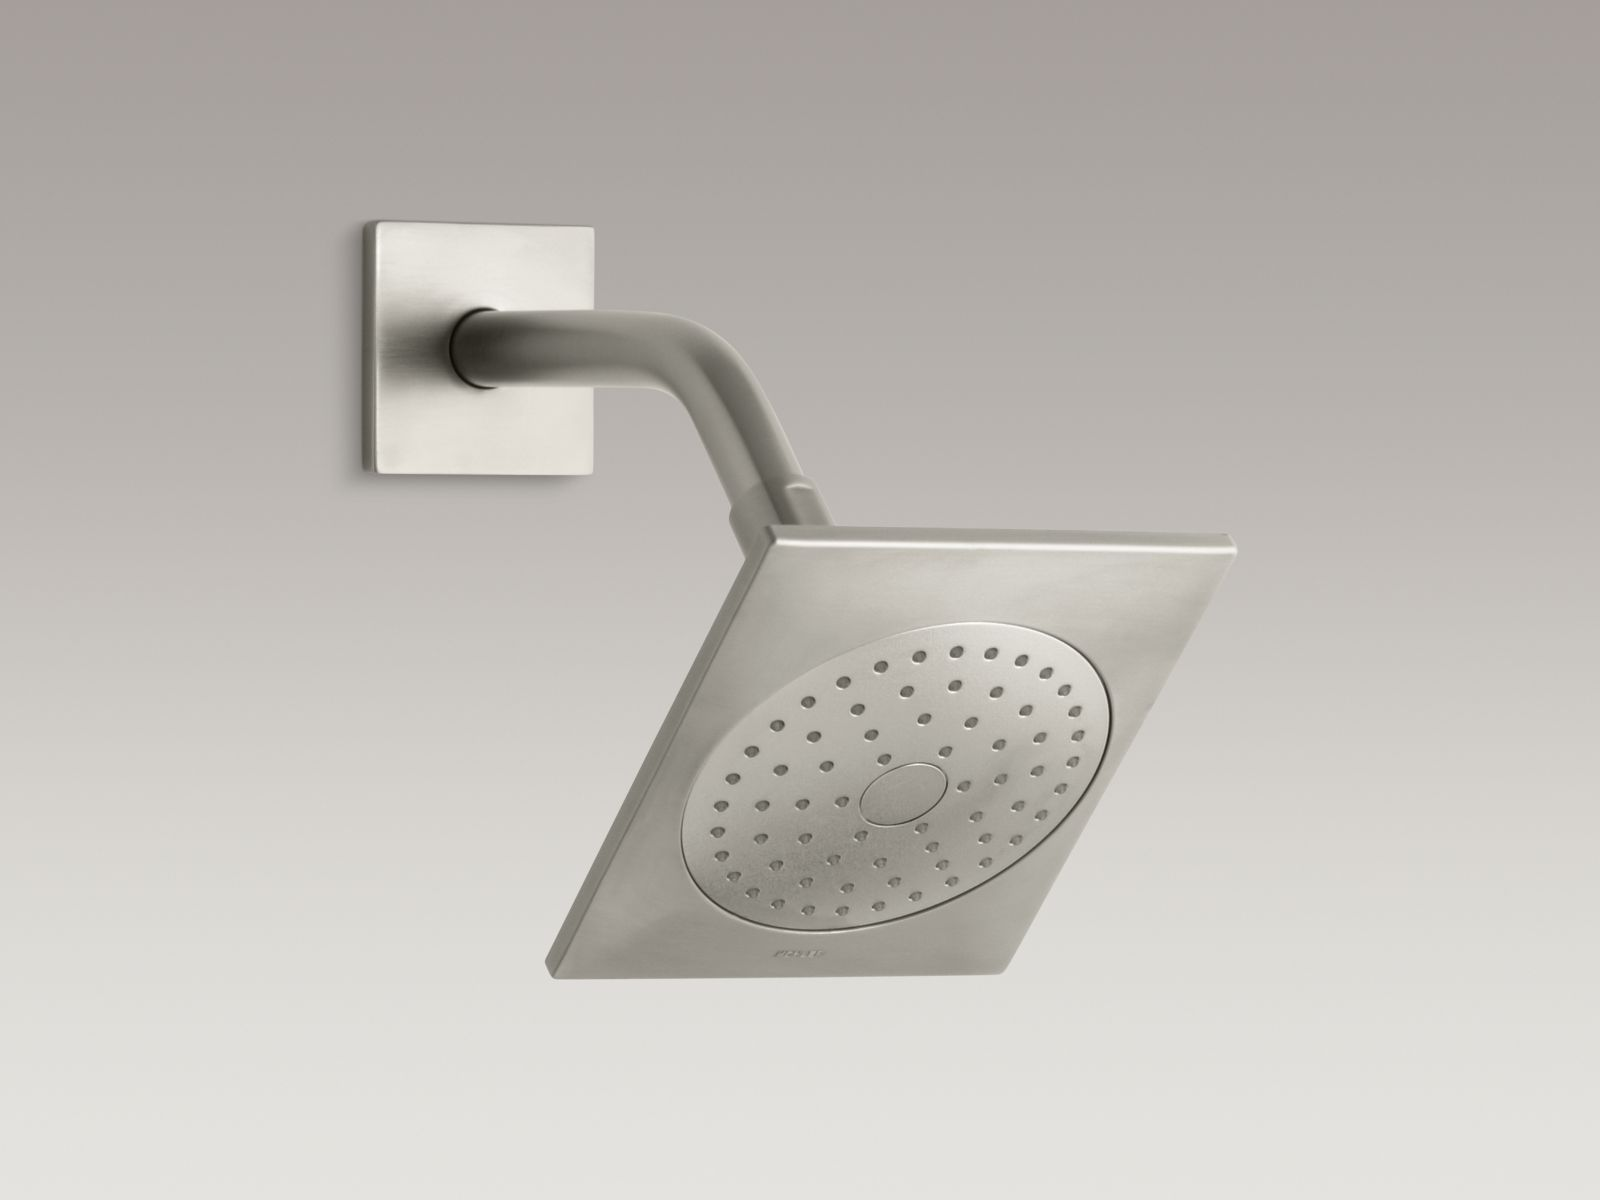 Kohler K-14786-BN Loure Single-Function Showerhead Vibrant Brushed Nickel